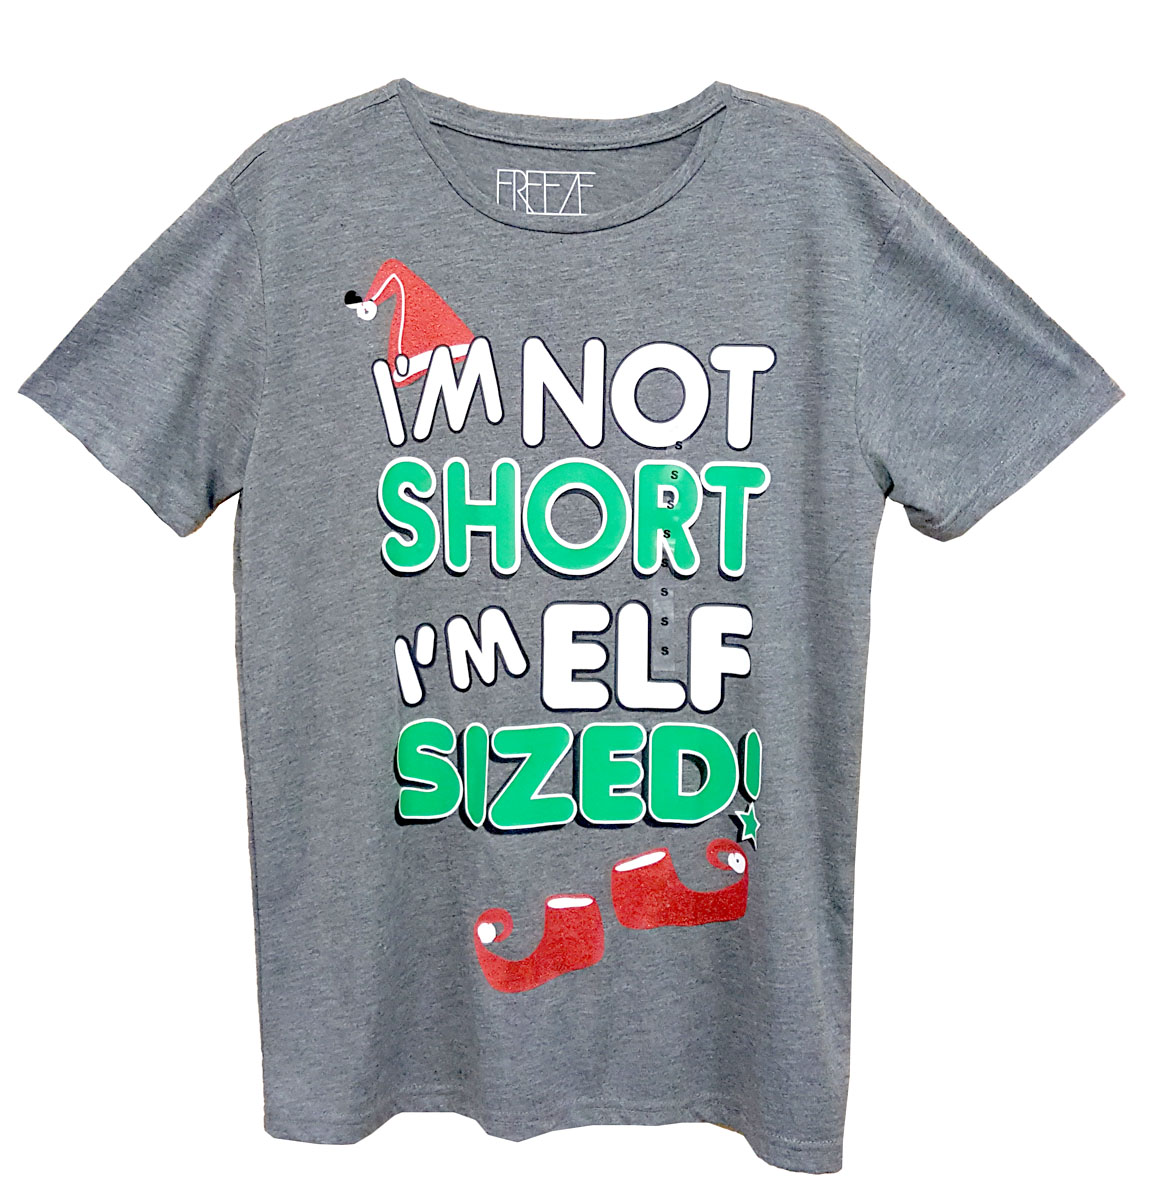 JUNIOR I AM NOT SHORT I'M ELF SIZED GRAPHIC TSHIRT Mens and Boys Tee Shirt - Grey - Small Size